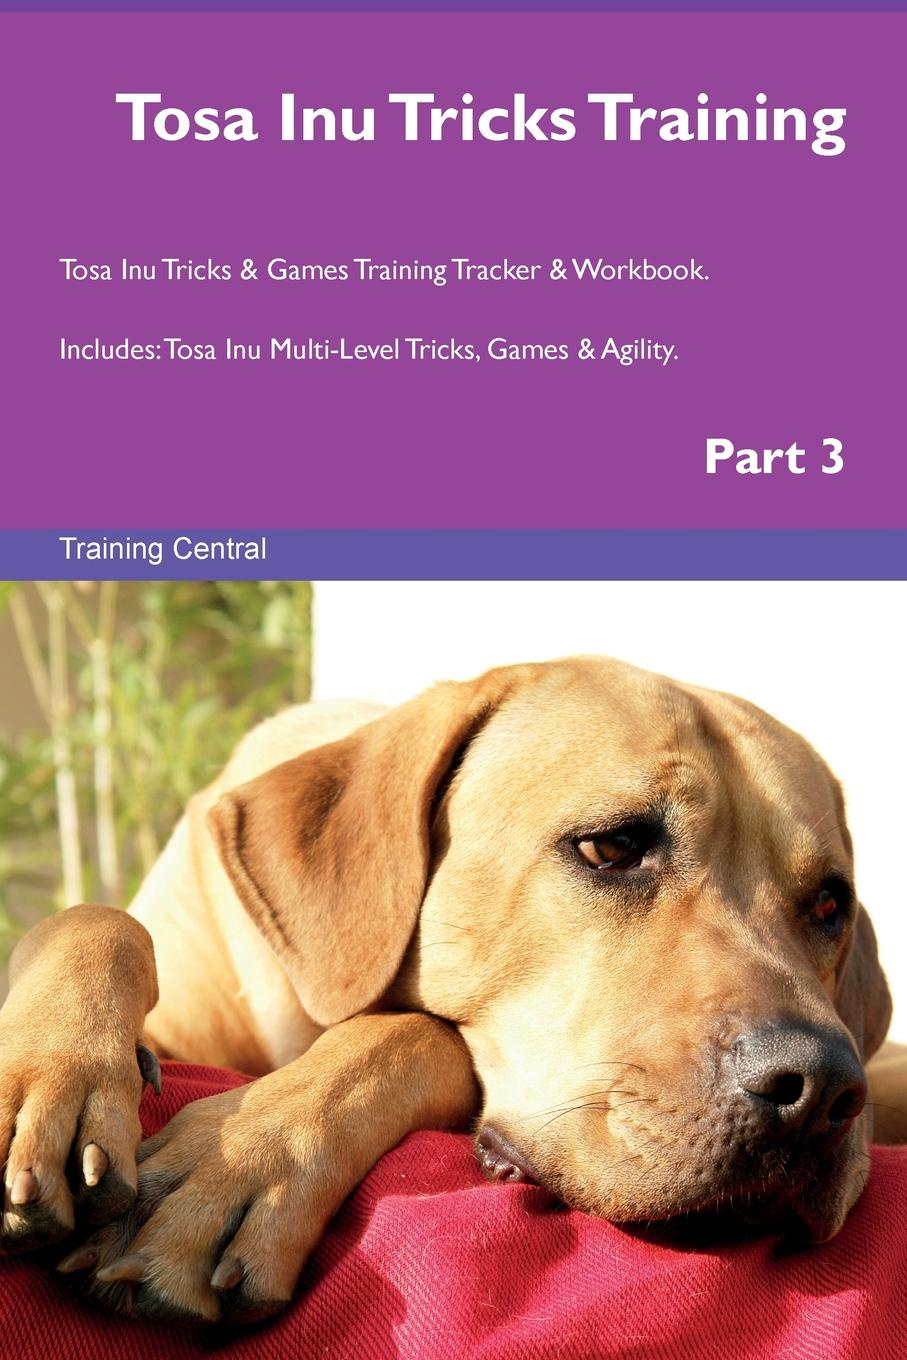 Training Central Tosa Inu Tricks Training Tosa Inu Tricks . Games Training Tracker . Workbook. Includes. Tosa Inu Multi-Level Tricks, Games . Agility. Part 3 this book loves you